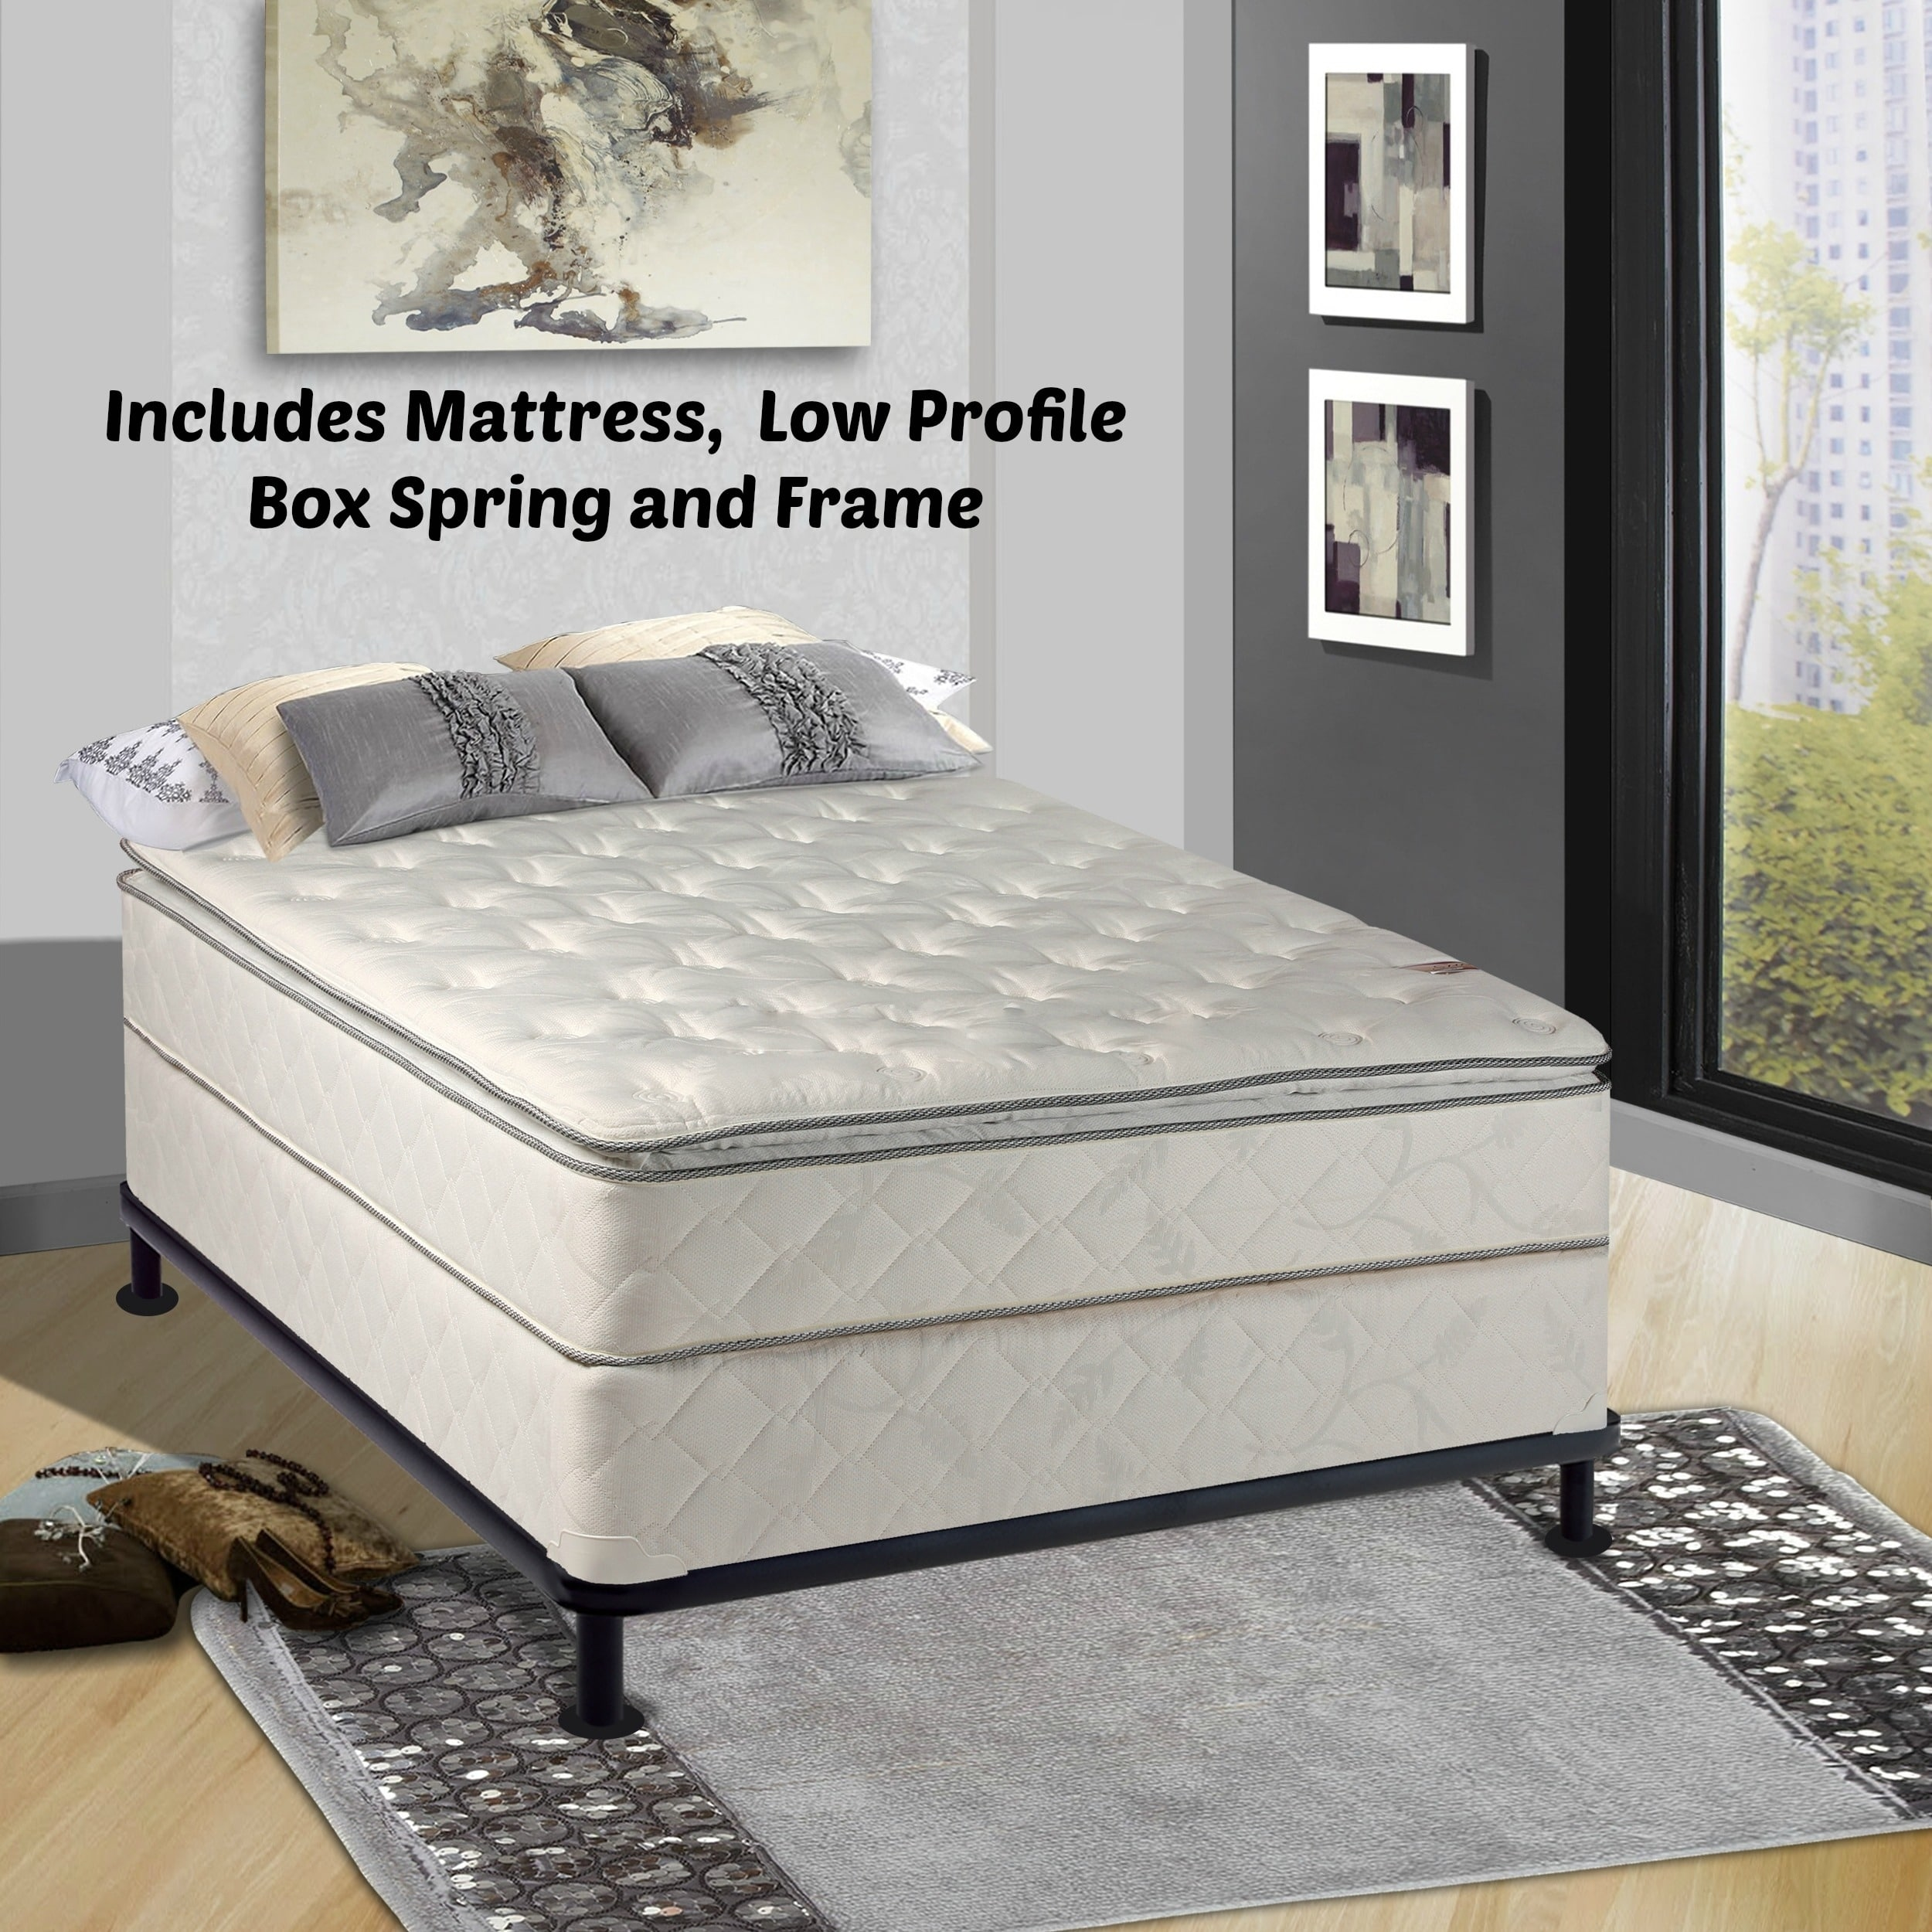 Continental Sleep , Medium Plush Pillowtop Orthopedic type Mattress and 5-inch Box Spring